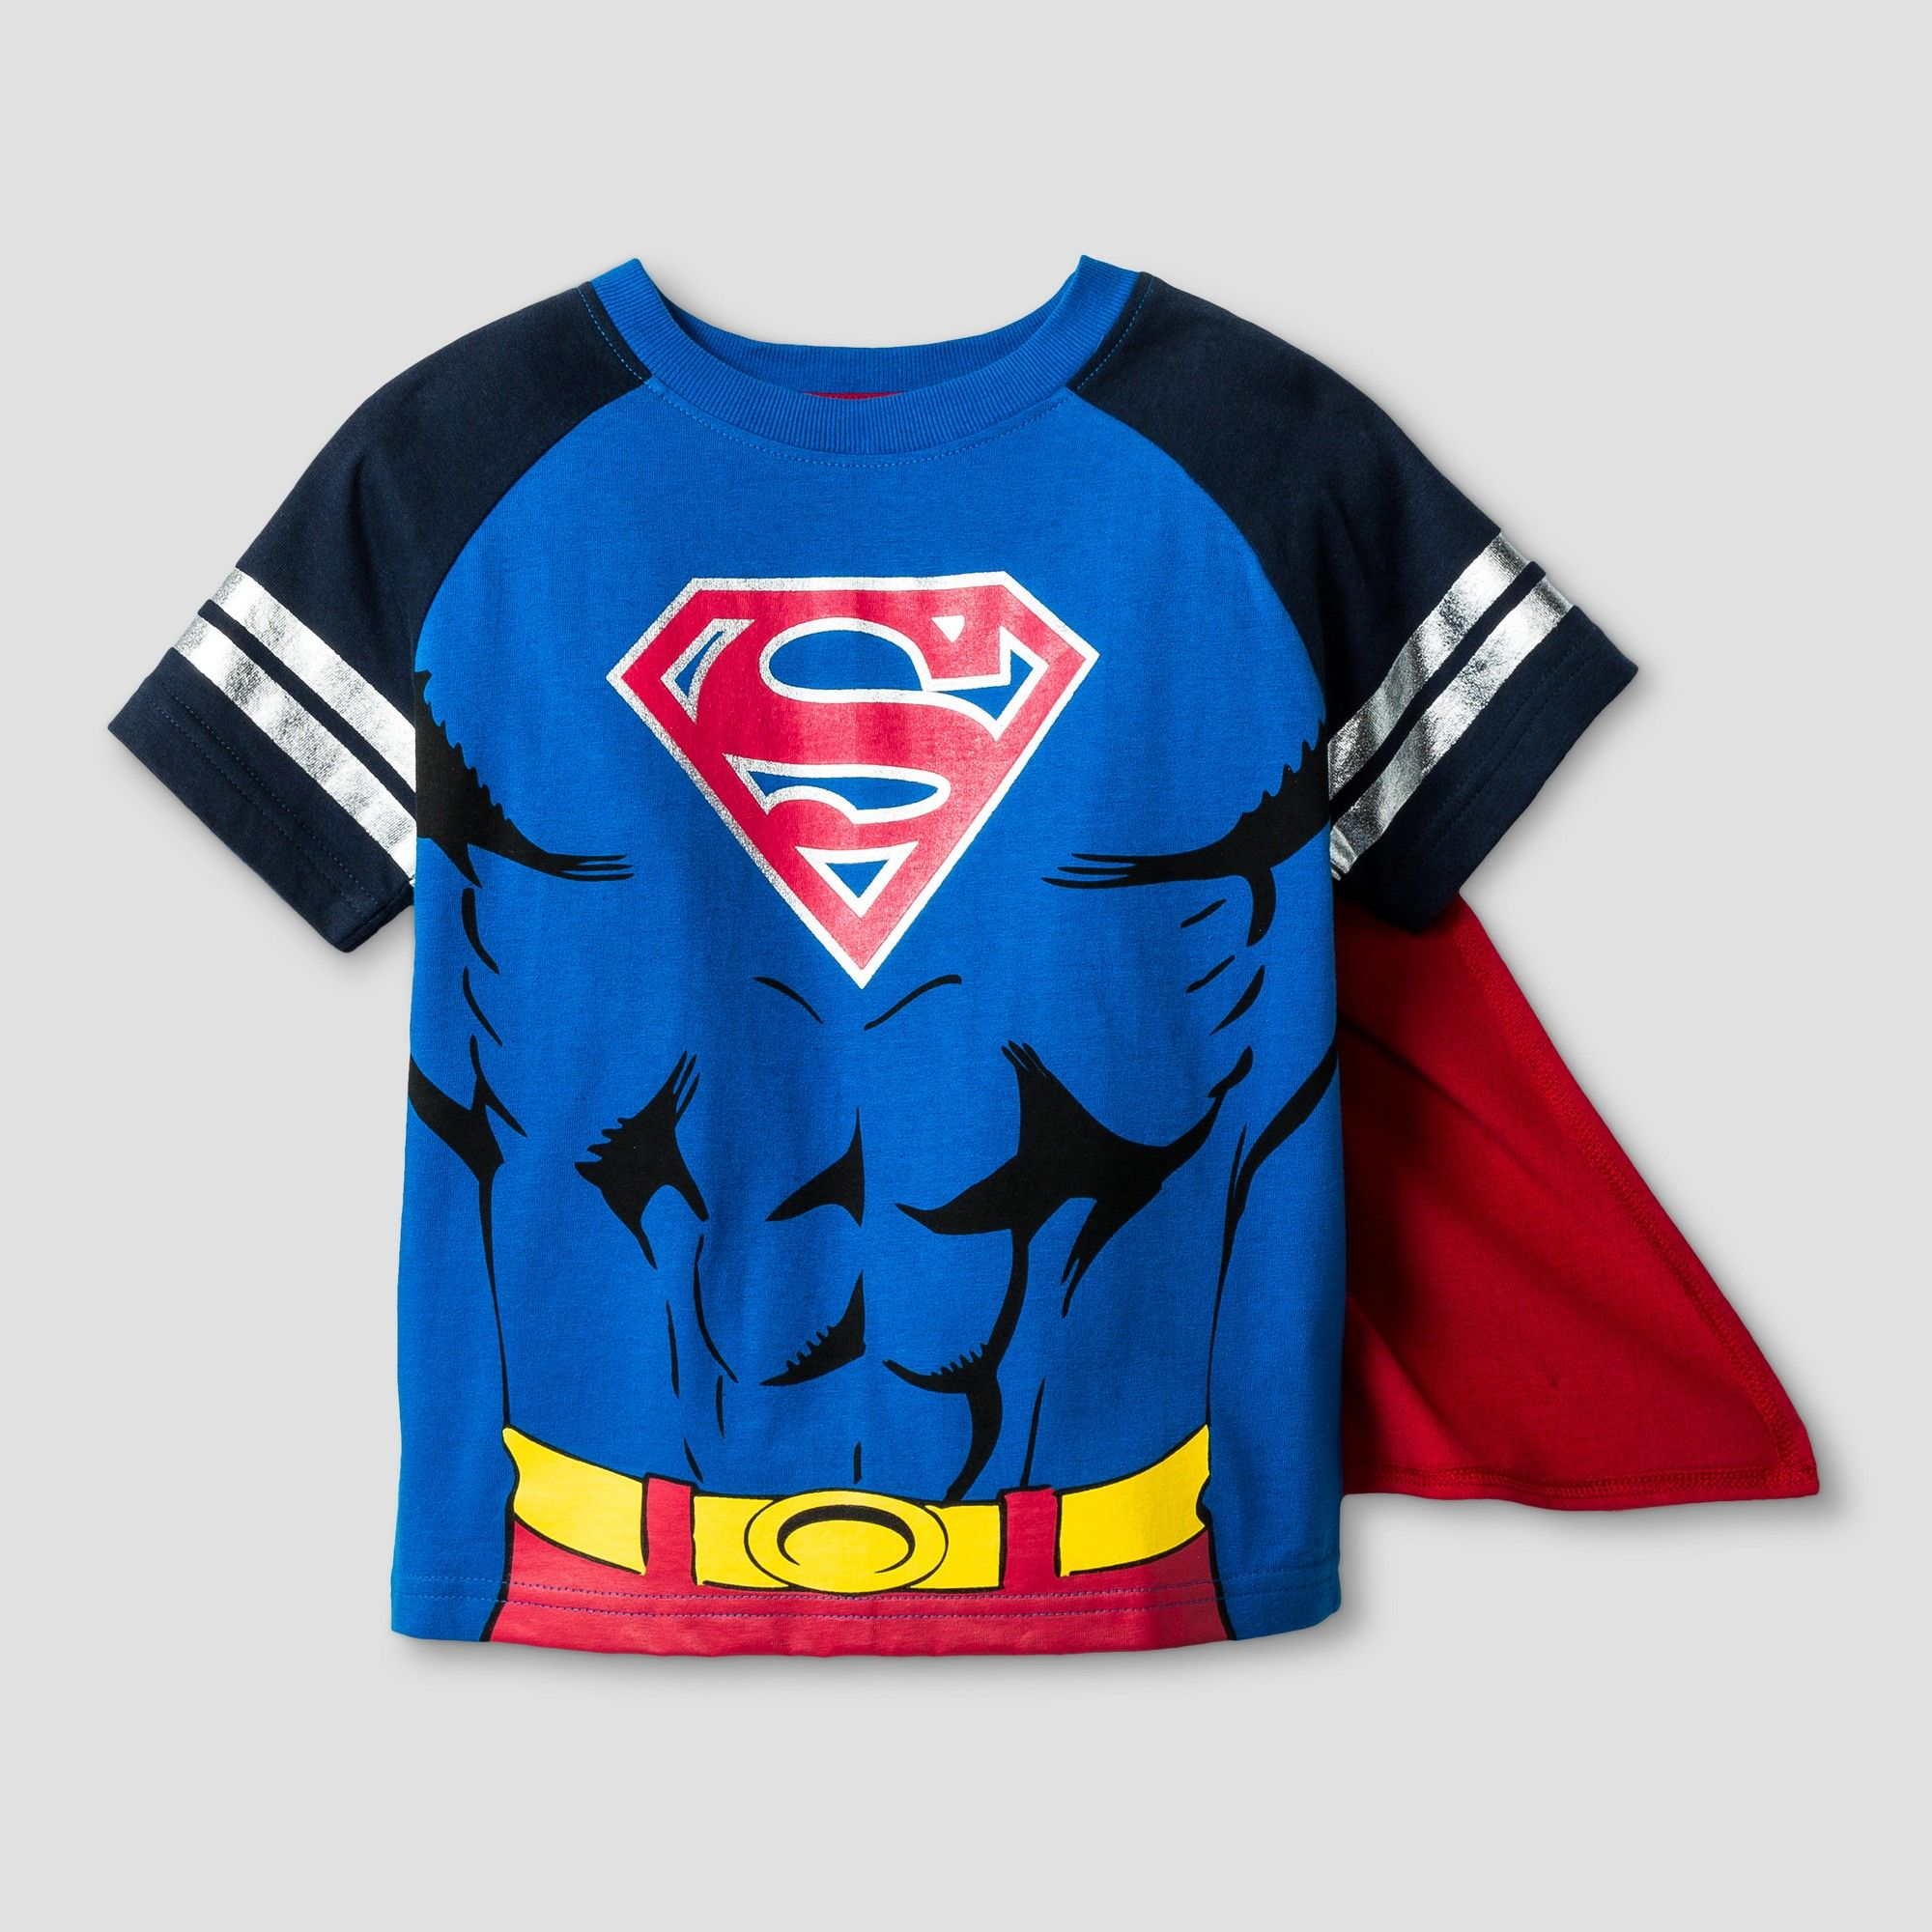 68d1128ad Toddler Boys' Superman Short Sleeve Cape T-Shirt - Blue/Red 2T ...